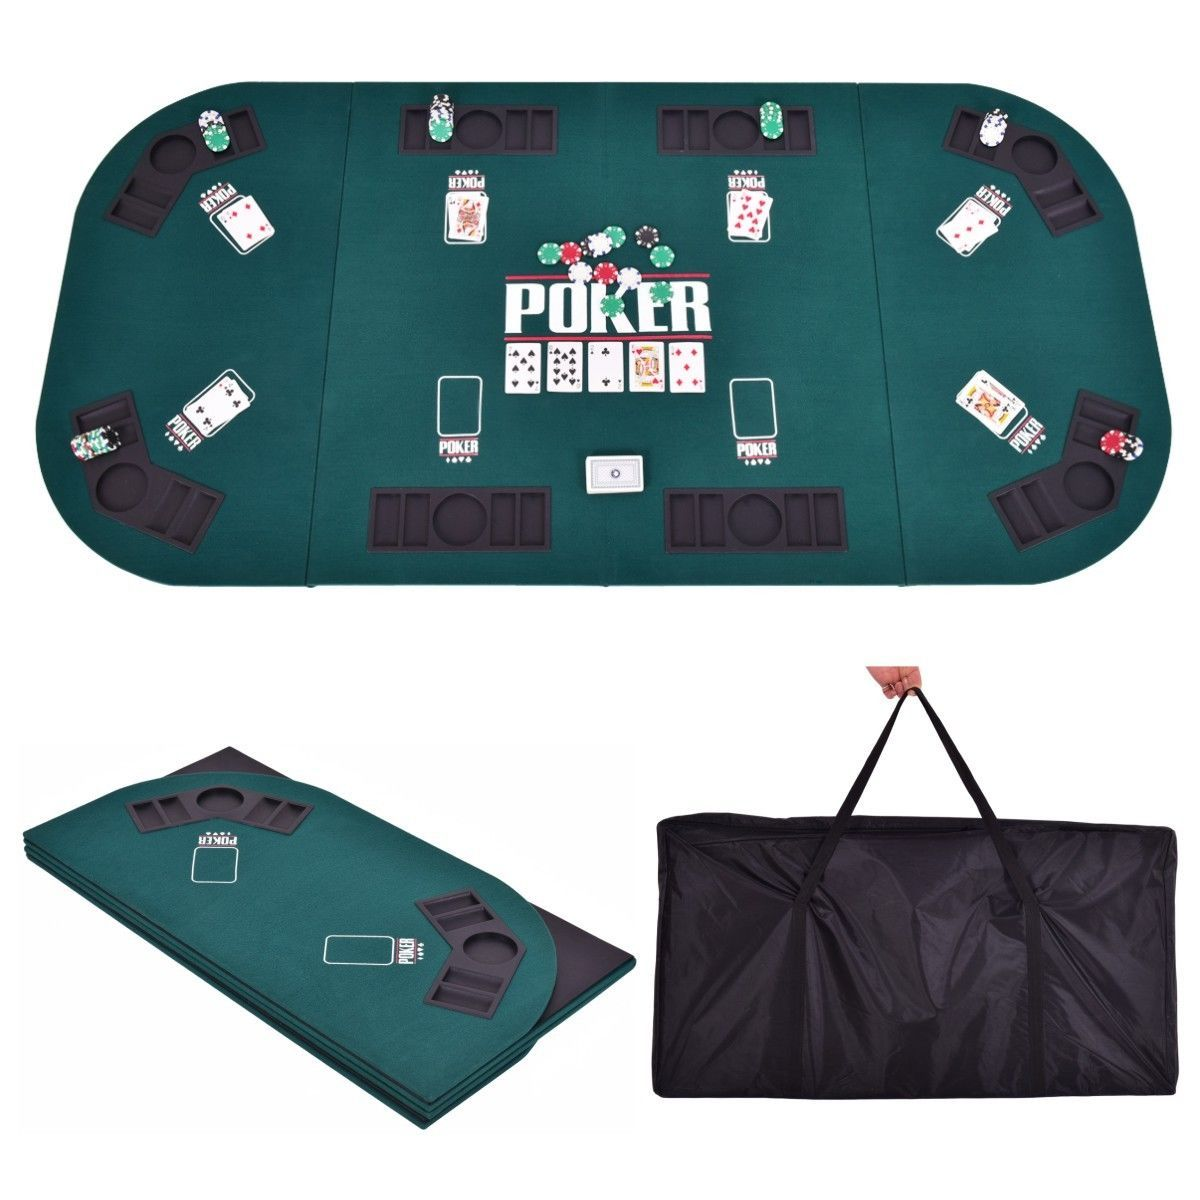 Folding Four Fold 8 Player Poker Table Top Carrying Case Portable Green Poker Table Top Poker Table Poker Table Plans